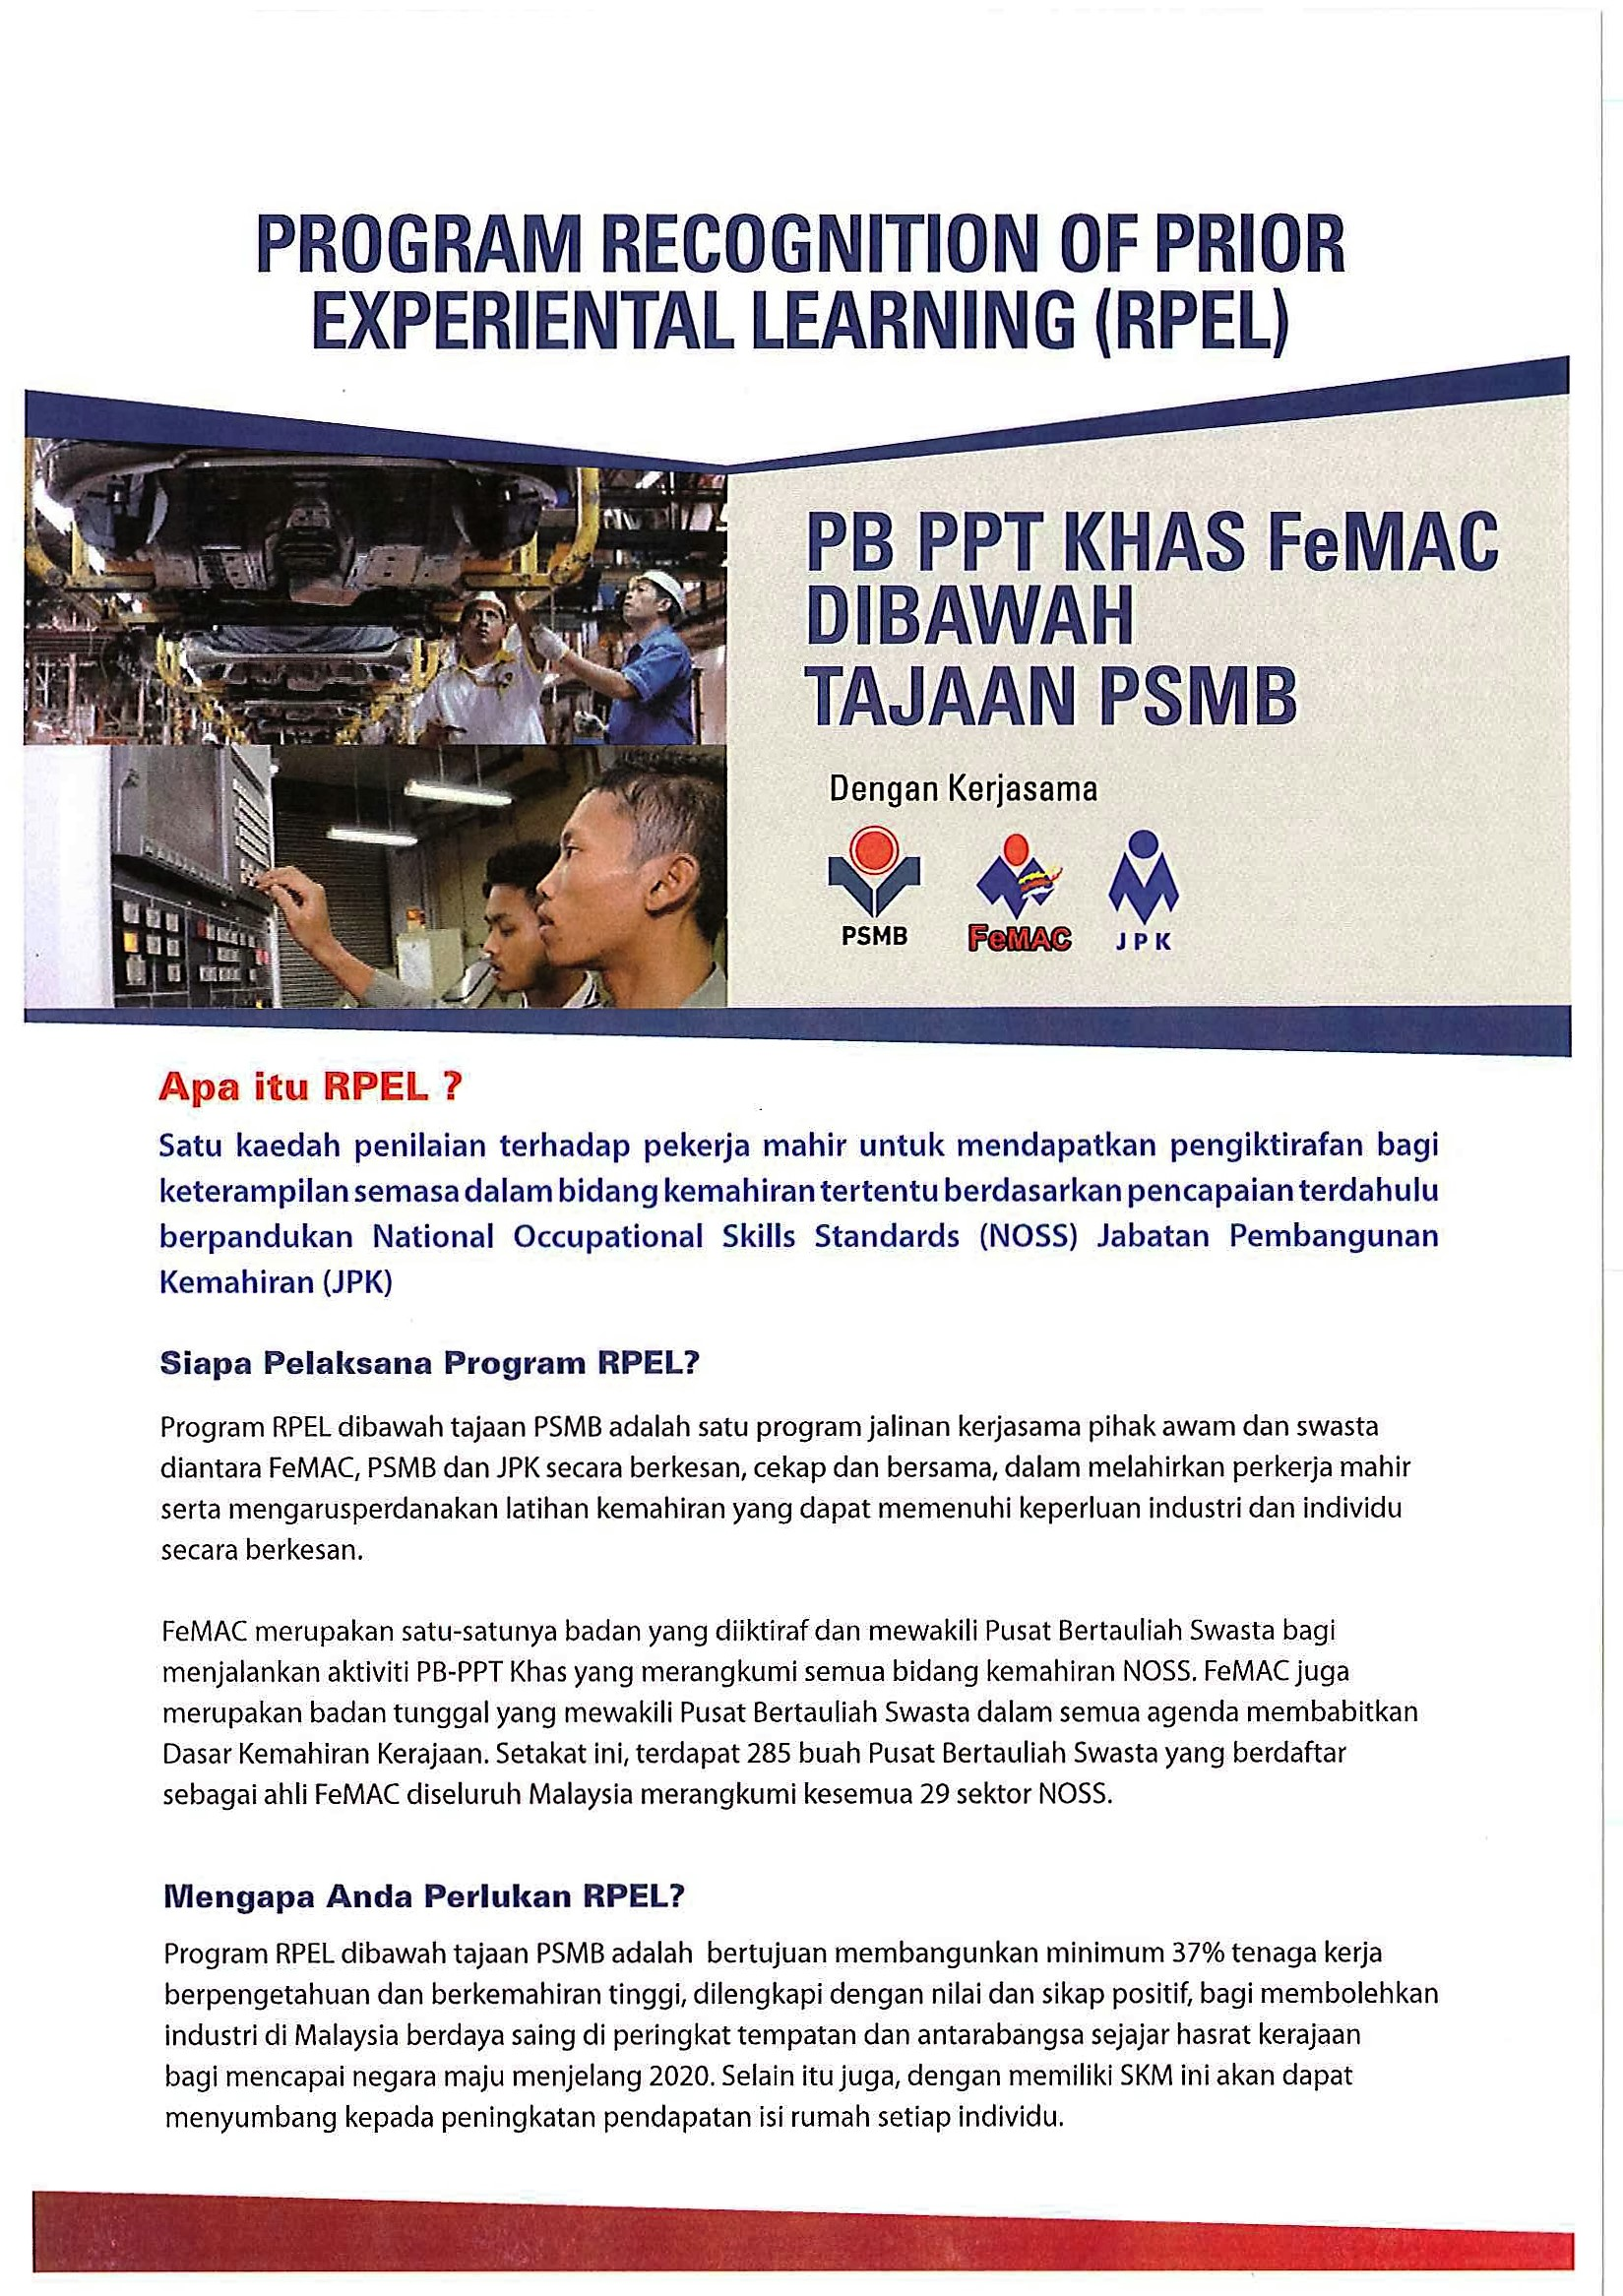 PROGRAM RECOGNITION OF PRIOR EXPERIENTIAL LEARNING (RPEL) / PPT